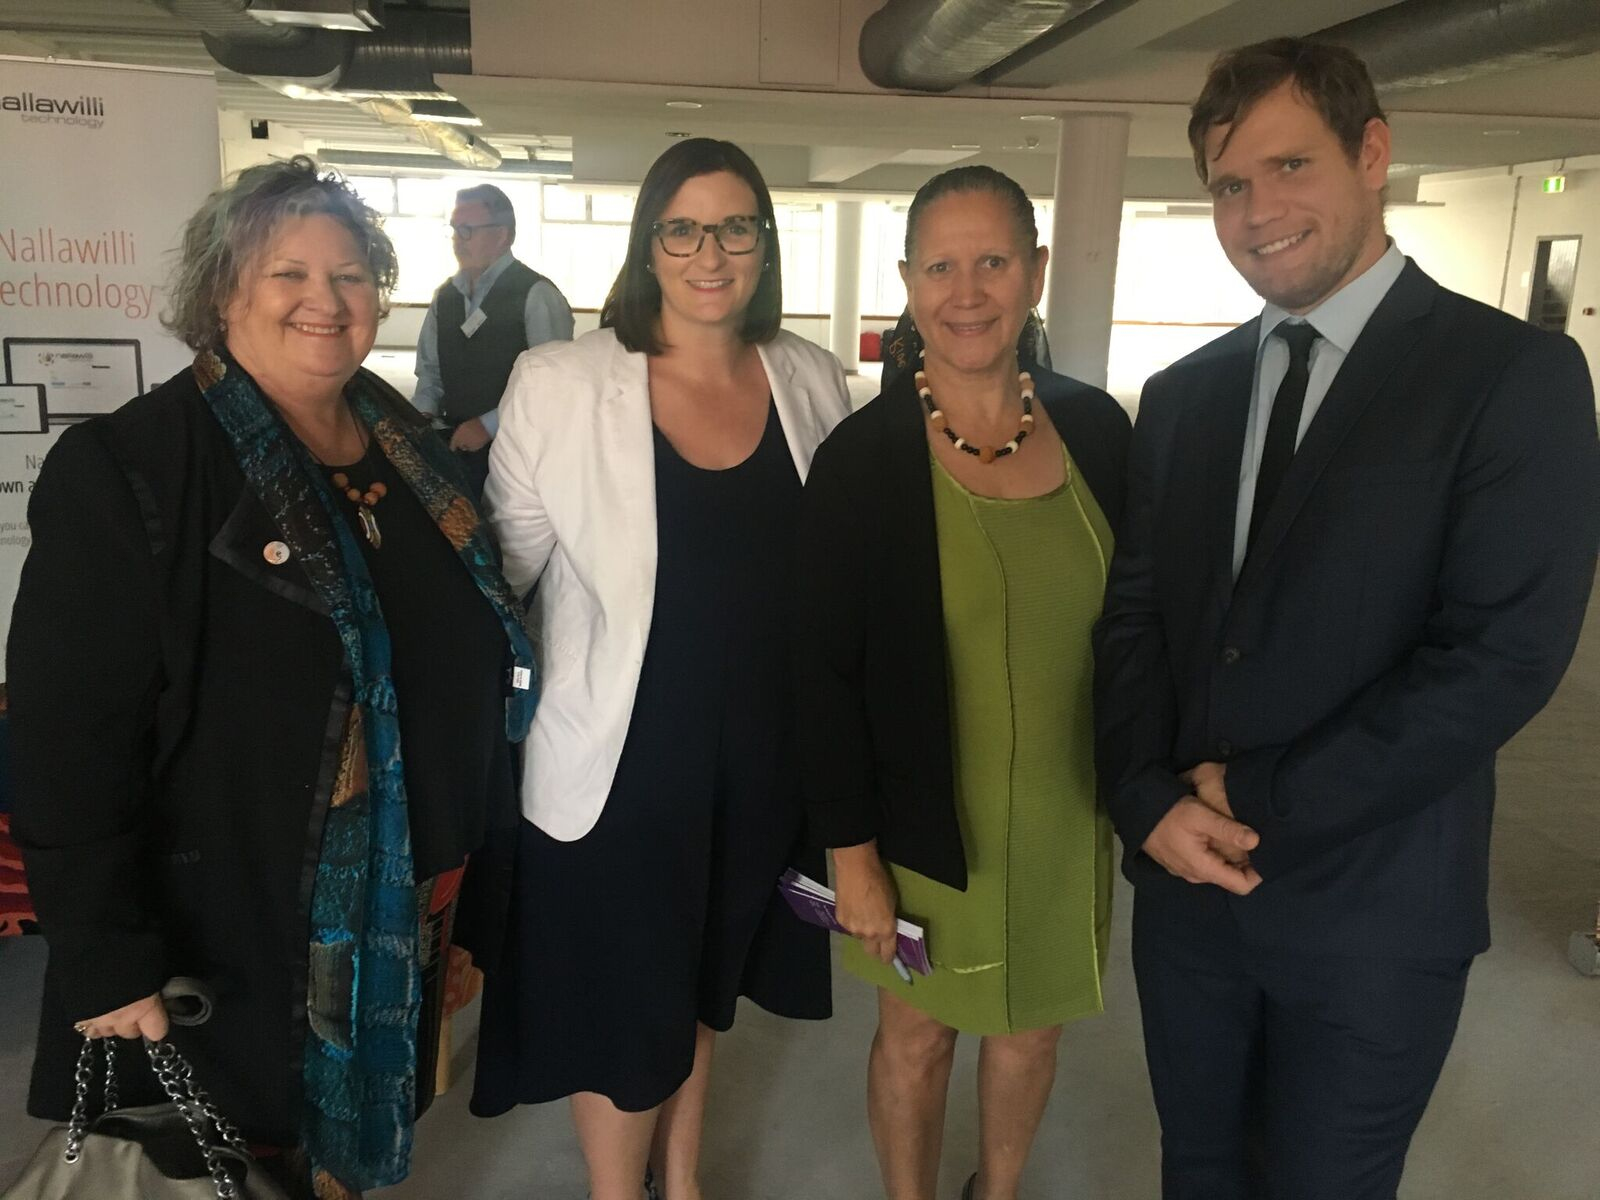 Photo: Kate Kelleher of Kate Kalleher Consulting, The Hon. Sarah Mitchell, MLC, Carol Vale, Matthew Hammond